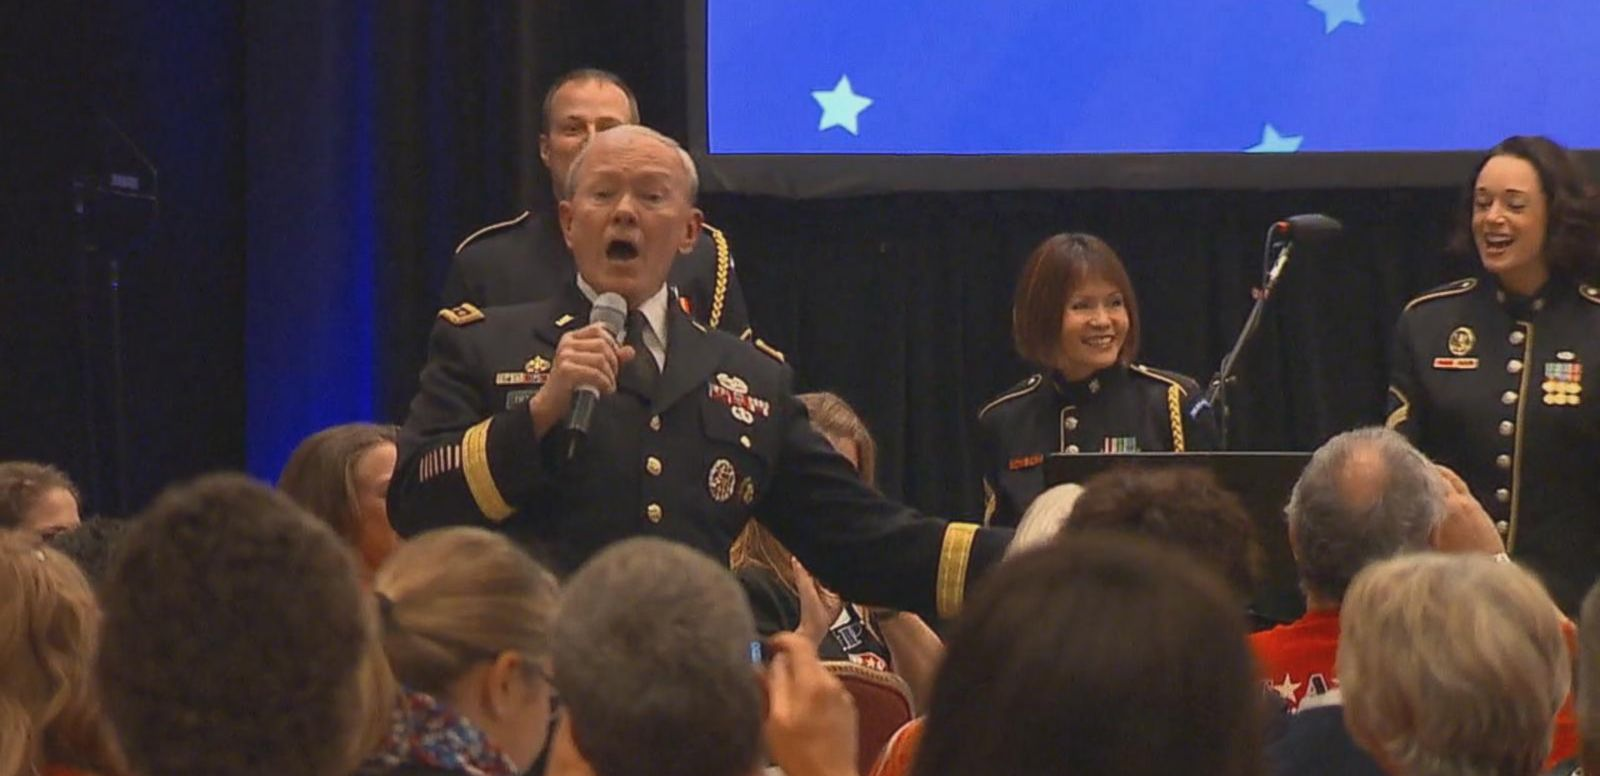 VIDEO: Joint Chiefs Chairman Martin Dempsey Sings to Cheer up Families of Fallen Service Members